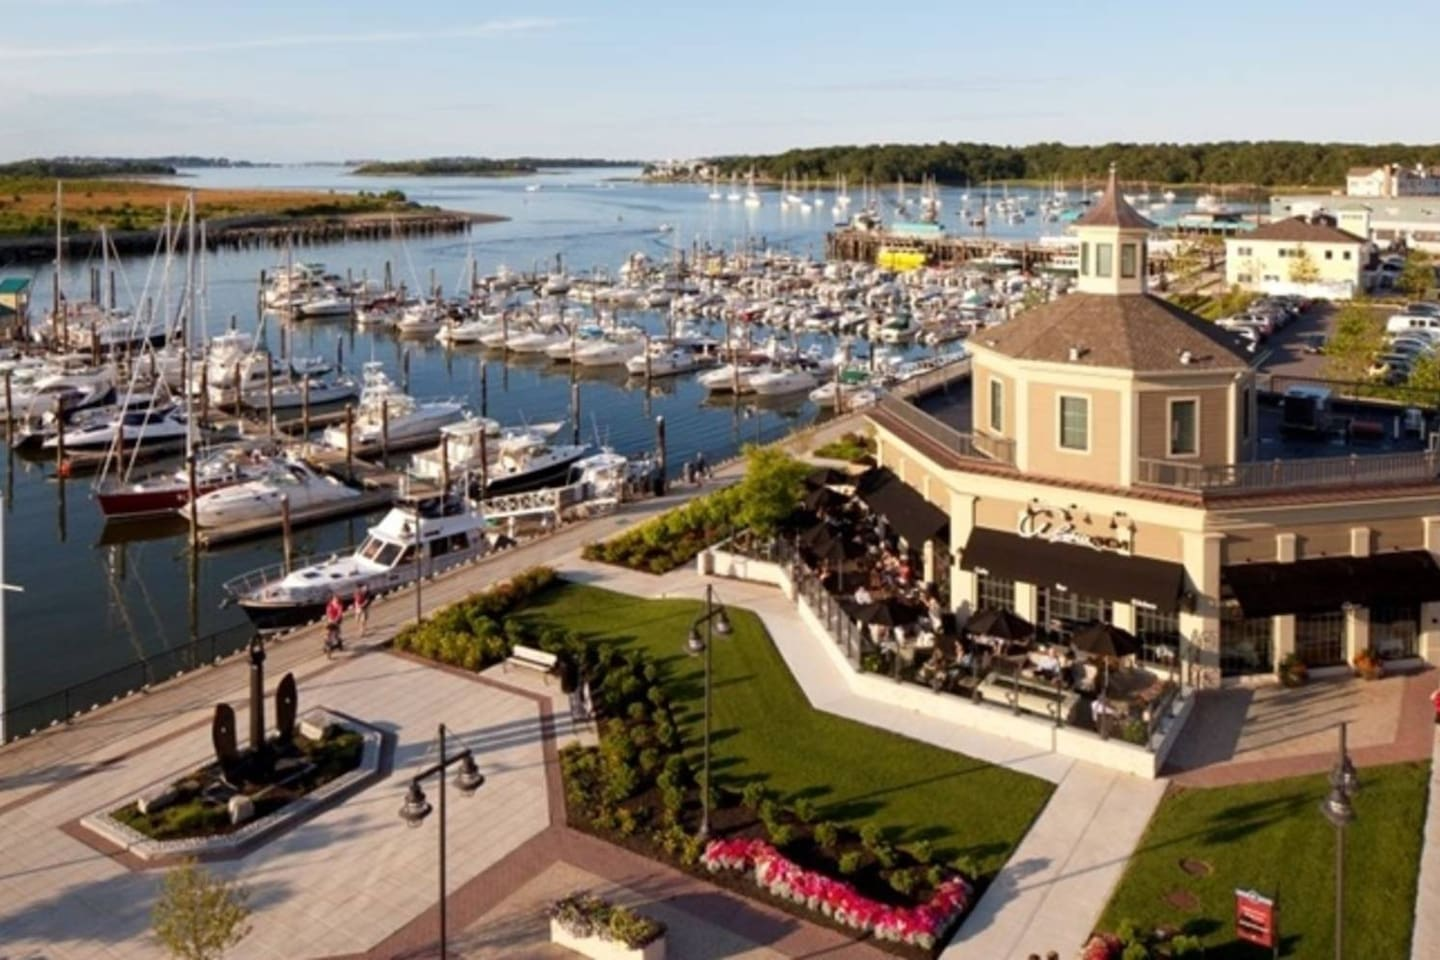 Hingham Shipyard is a 5 minute drive - shops, restaurants, movies, ferry to Boston!